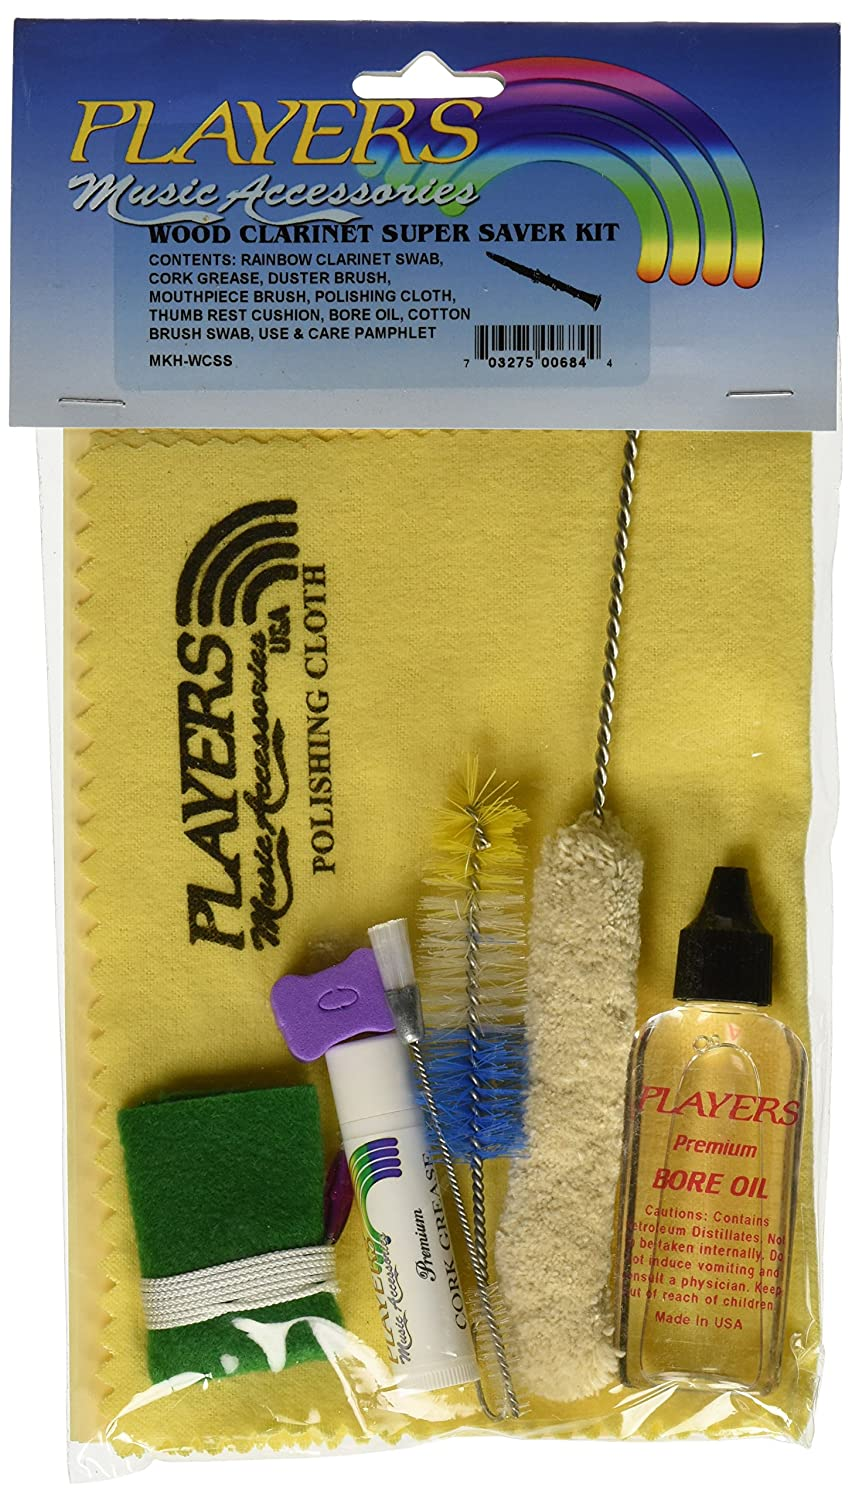 Players Products MKHWC-SS Super Saver Wood Clarinet Care Kit